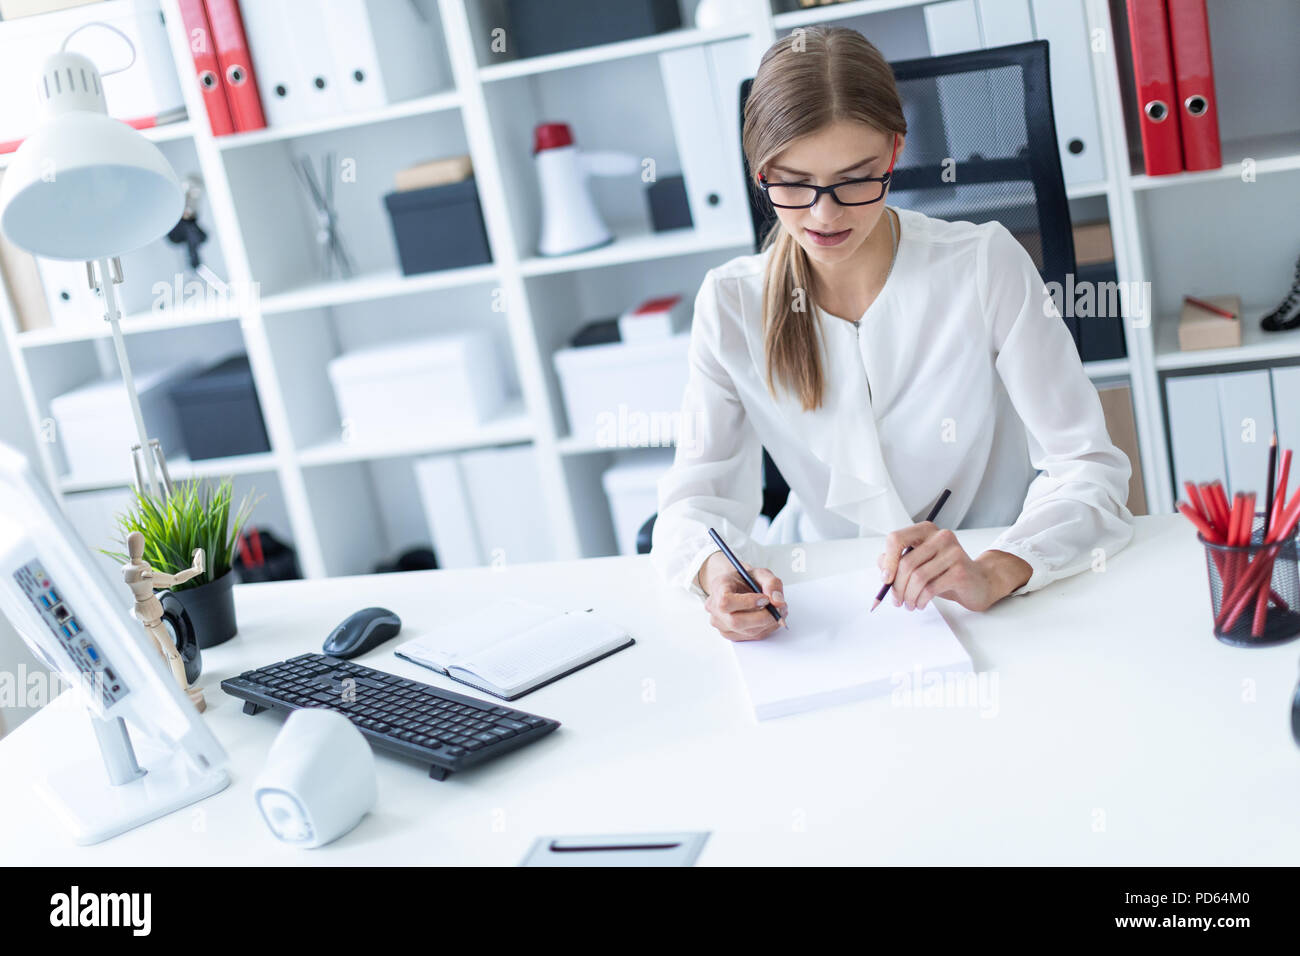 A young girl sits at a table in the office and holds pencils in her hands. Before the girl lies an open book. - Stock Image